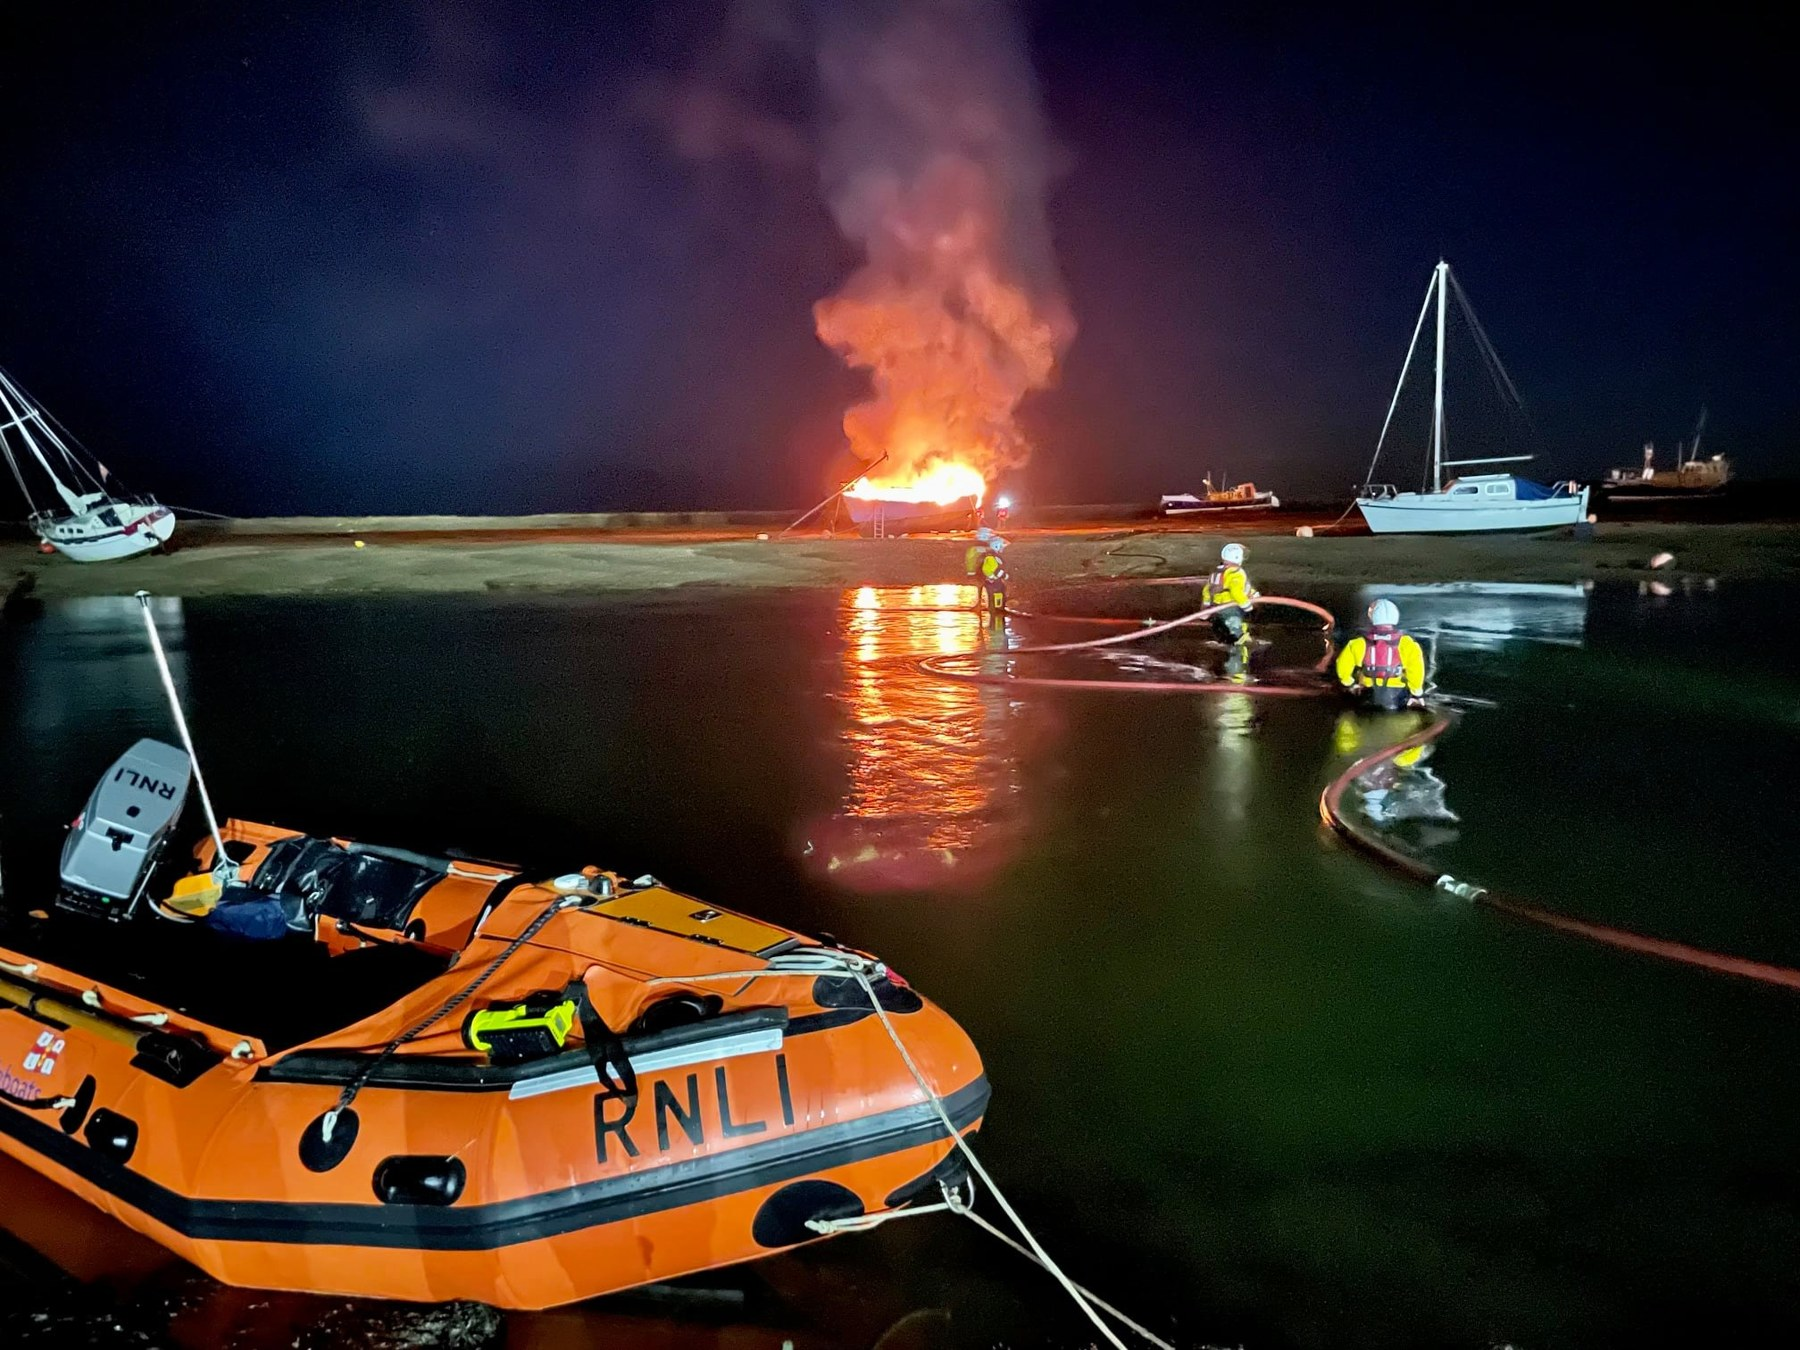 ILB crew assist with feeding fire service hose across the channel, 15/10/21